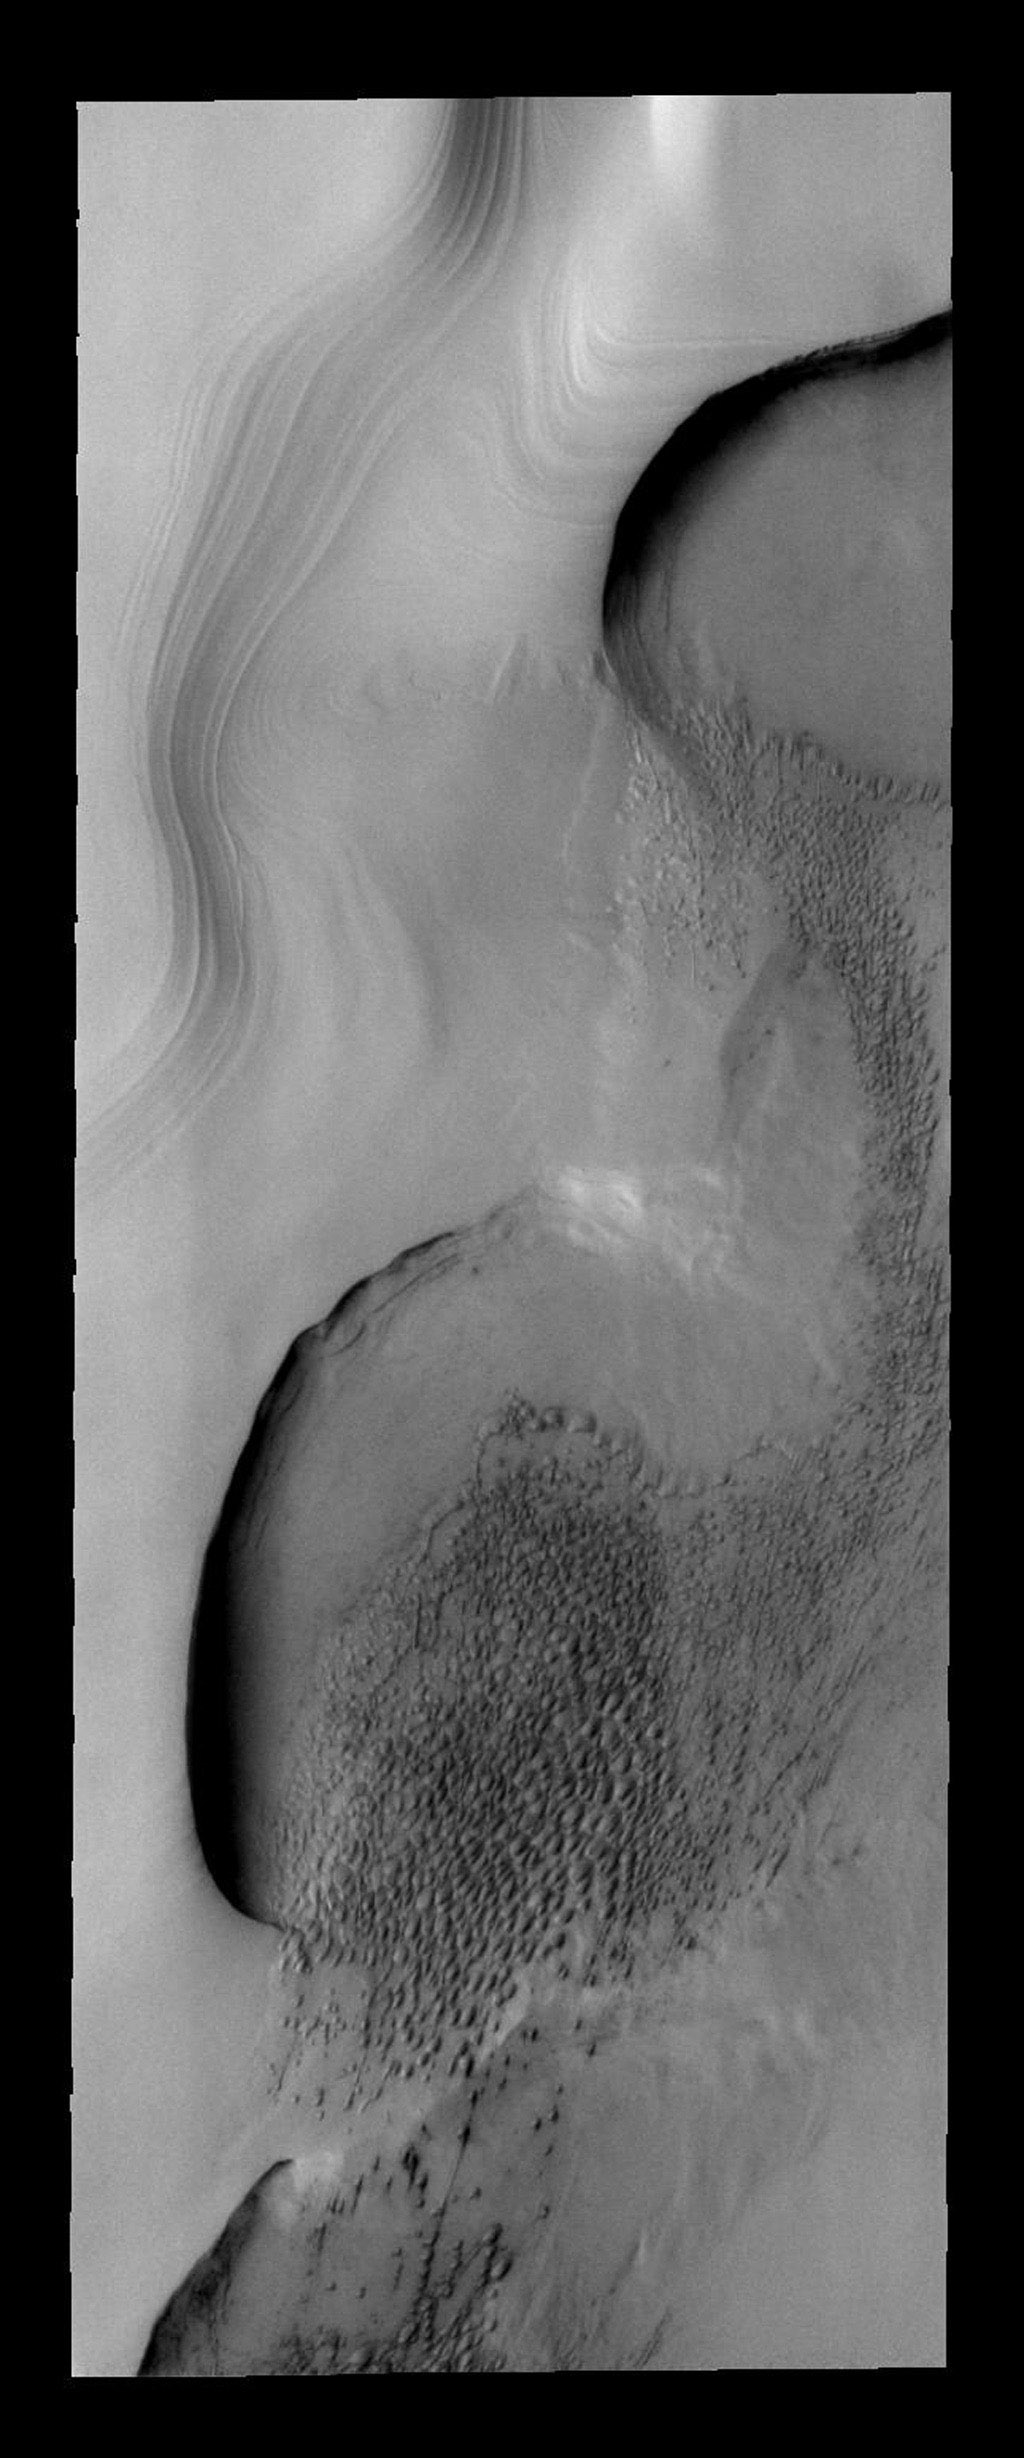 Dune fields are common within the north polar region on Mars as seen by NASA's Mars Odyssey spacecraft.